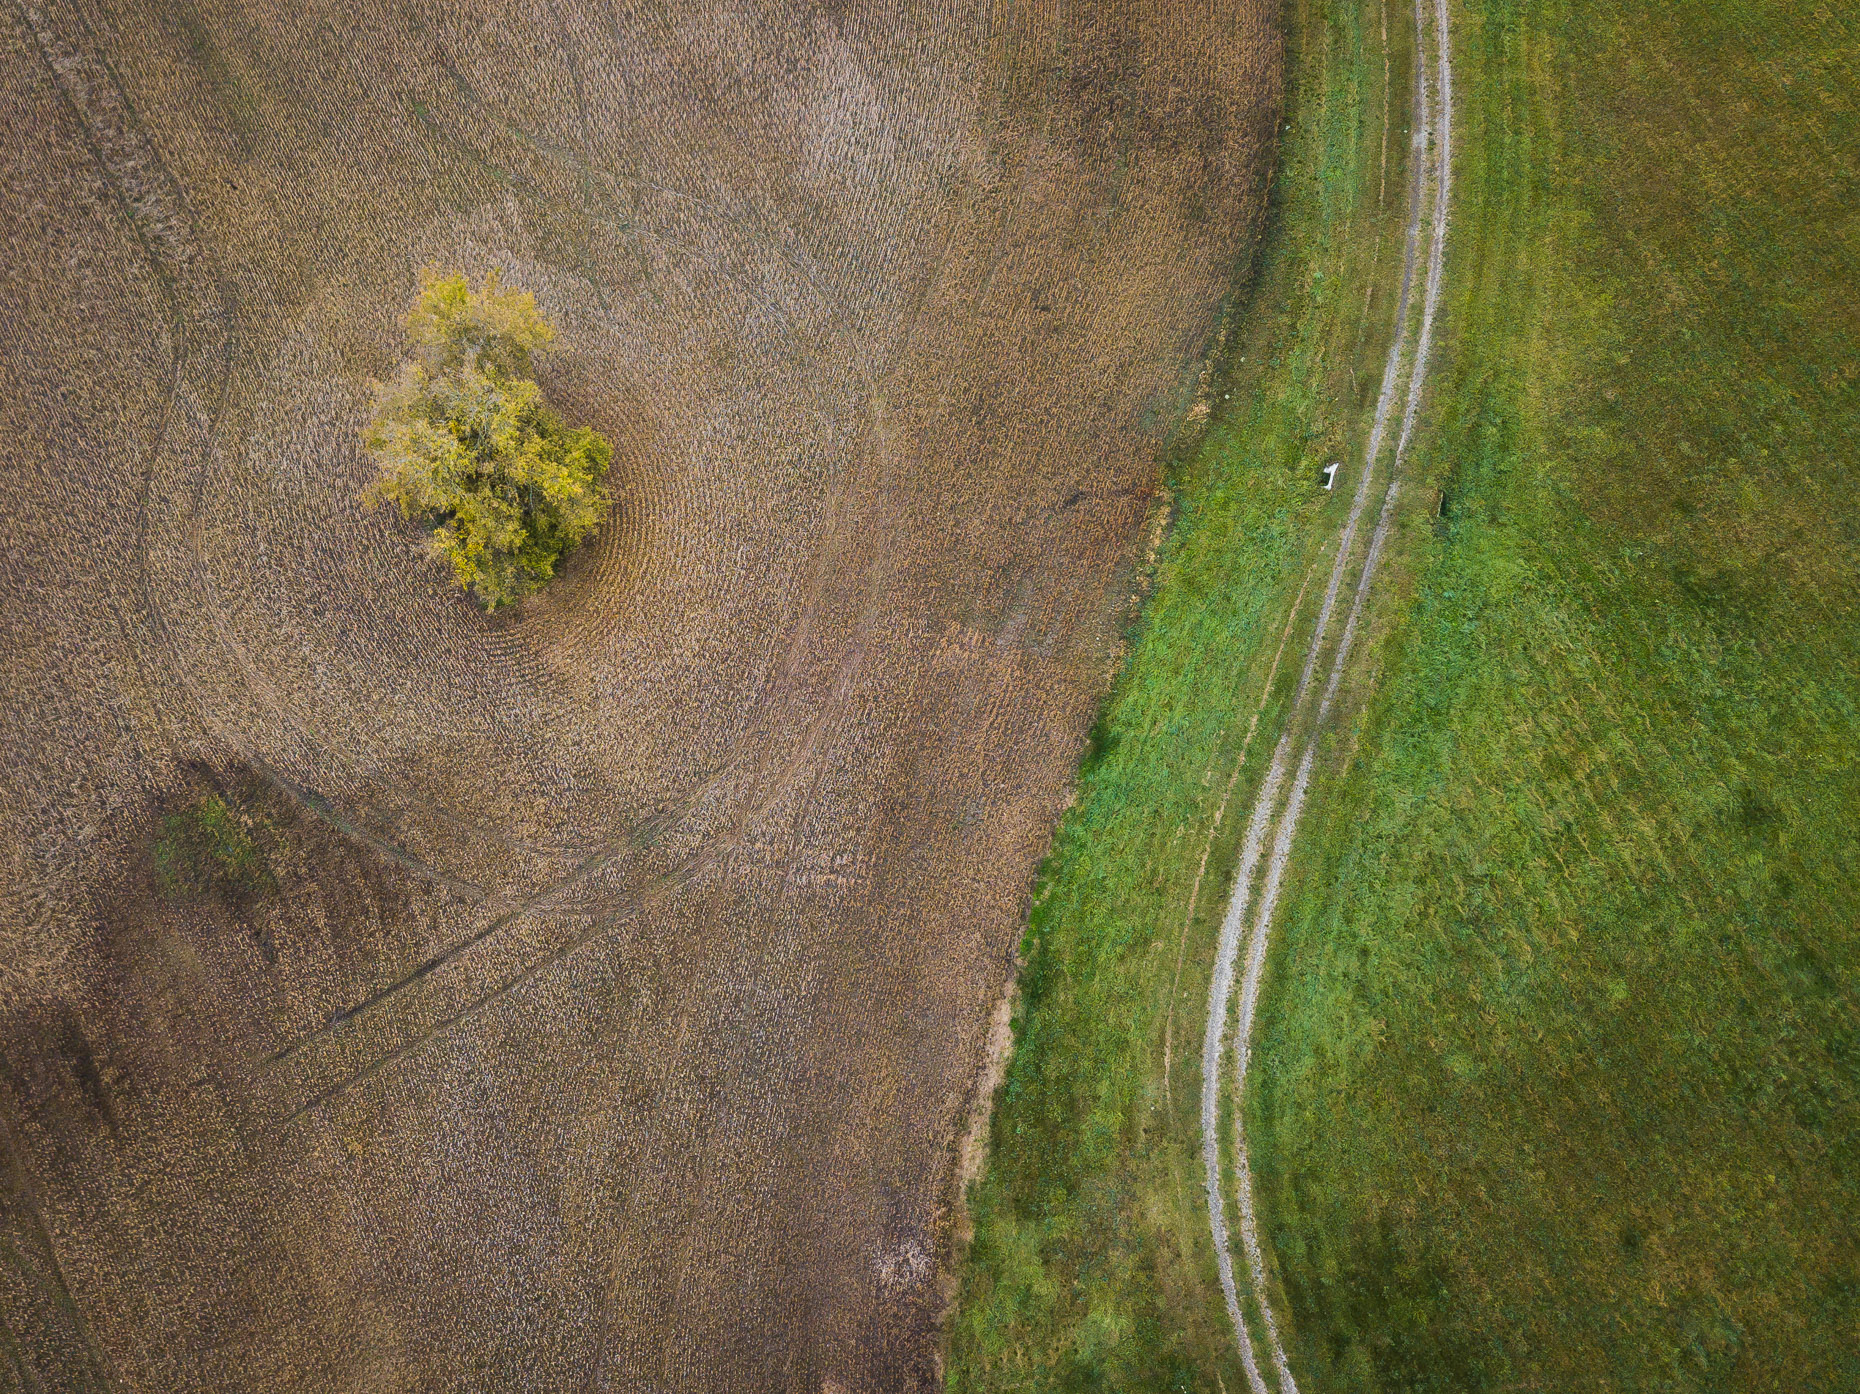 David_Coulson_Aerials13-Caledon